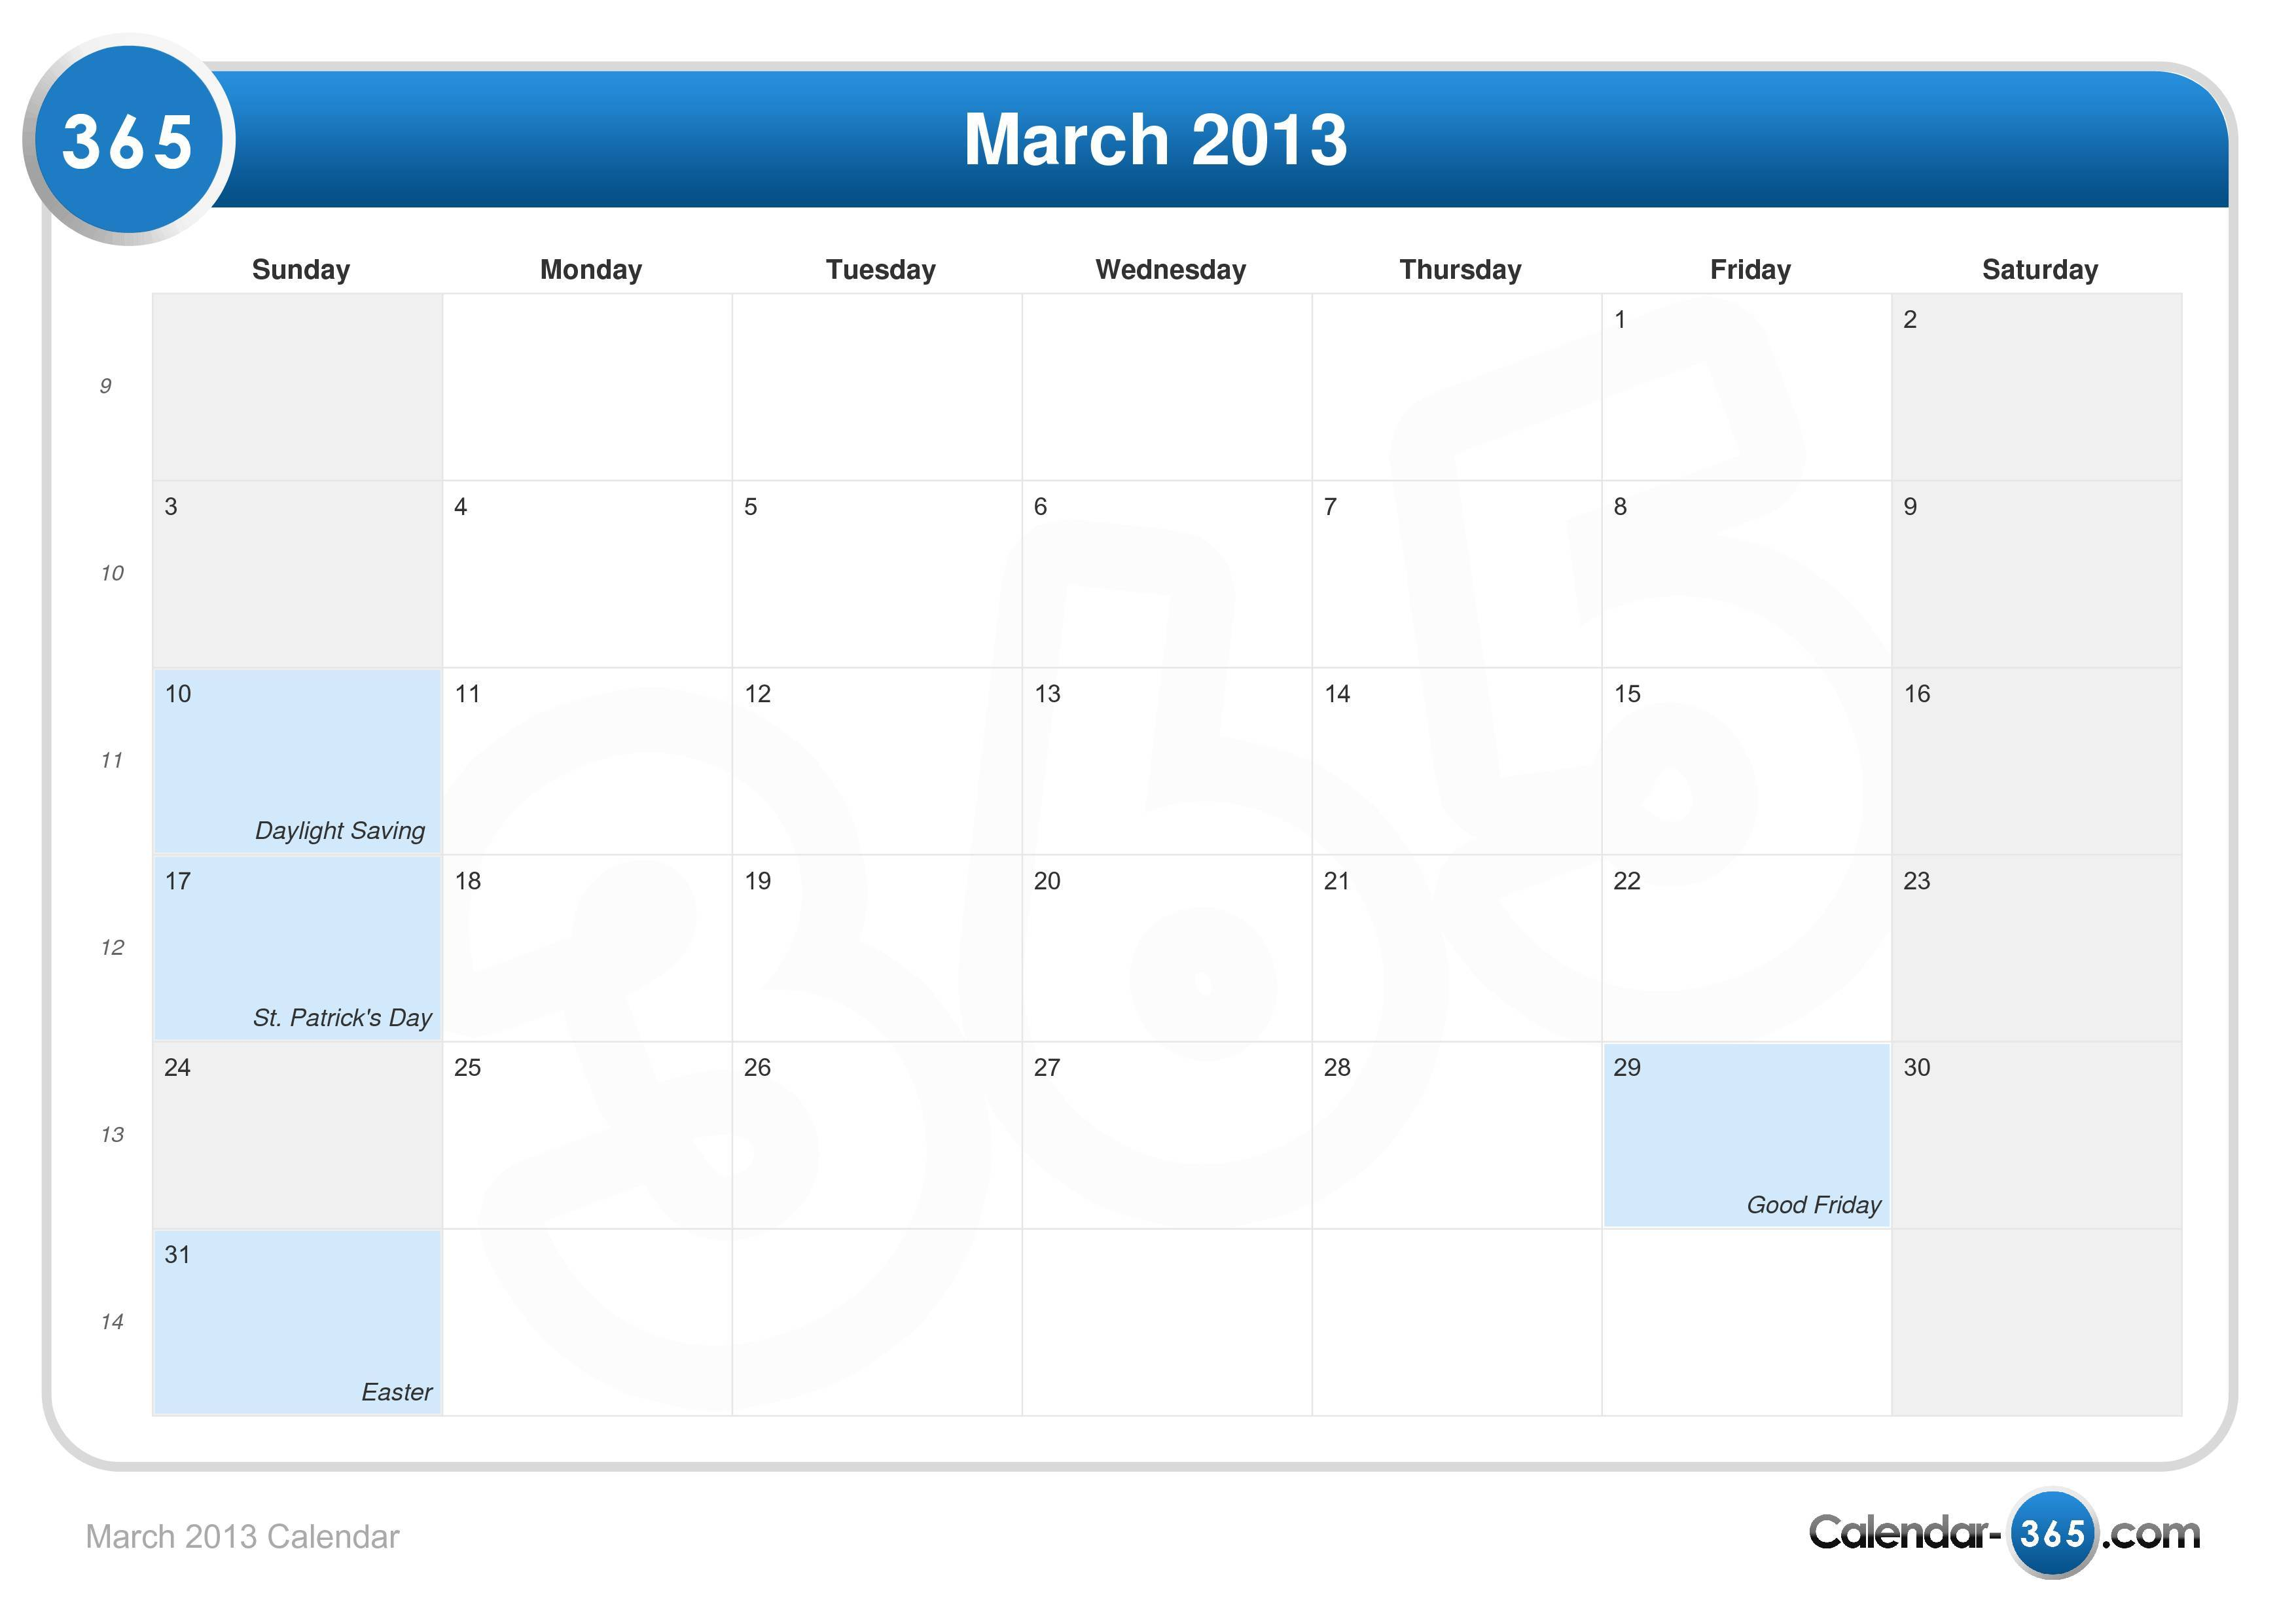 March 2013 - calendar templates for Word, Excel and PDF